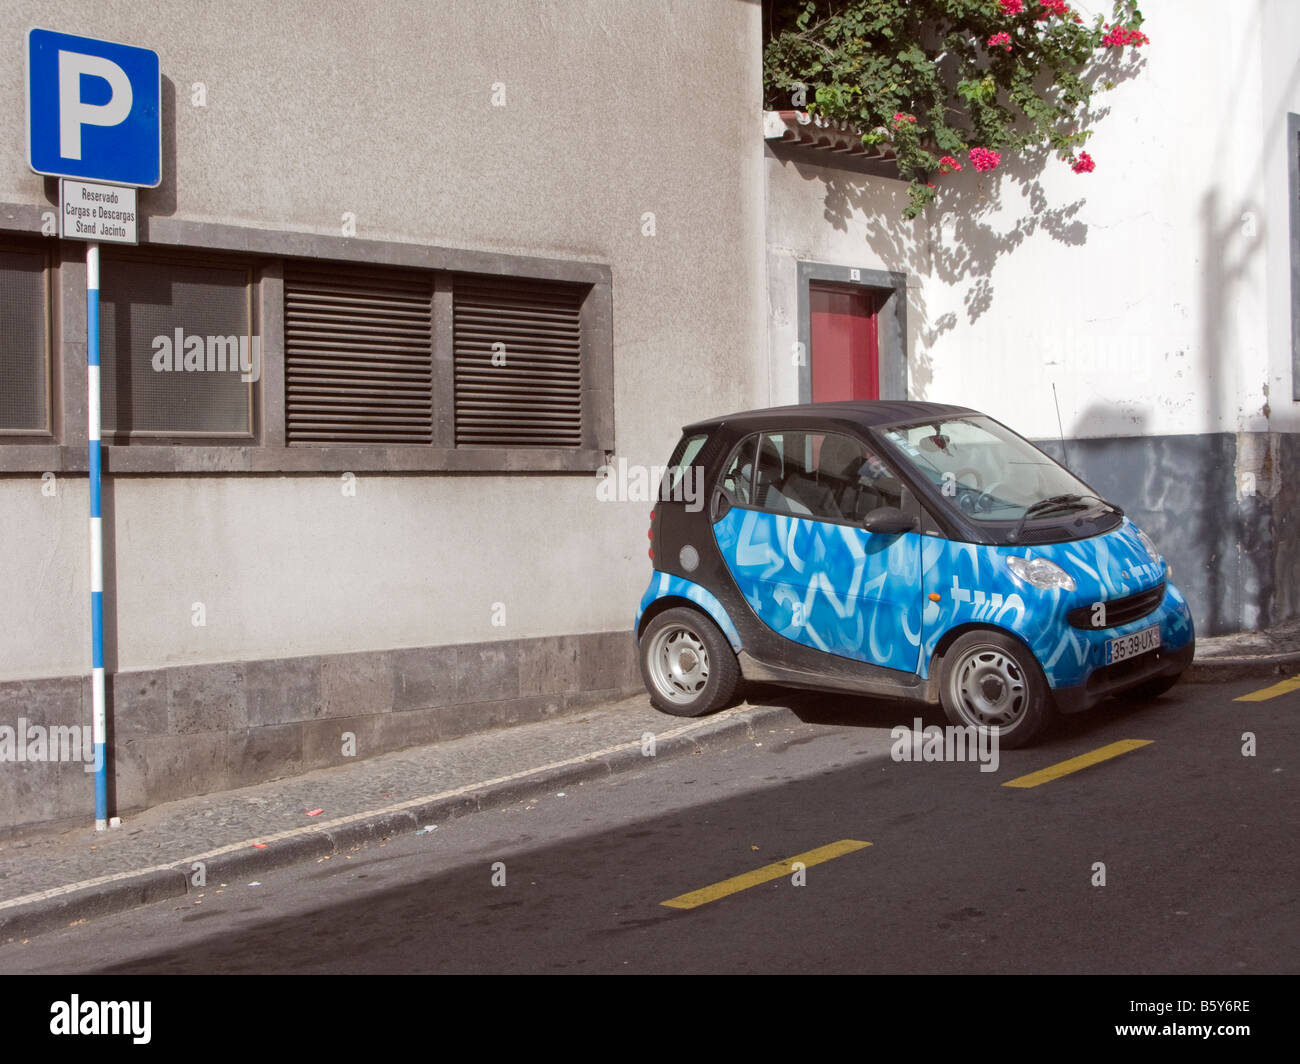 Small parked car and a parking sign at Ponta Delgada, São Miguel, Azores, Portugal - Stock Image